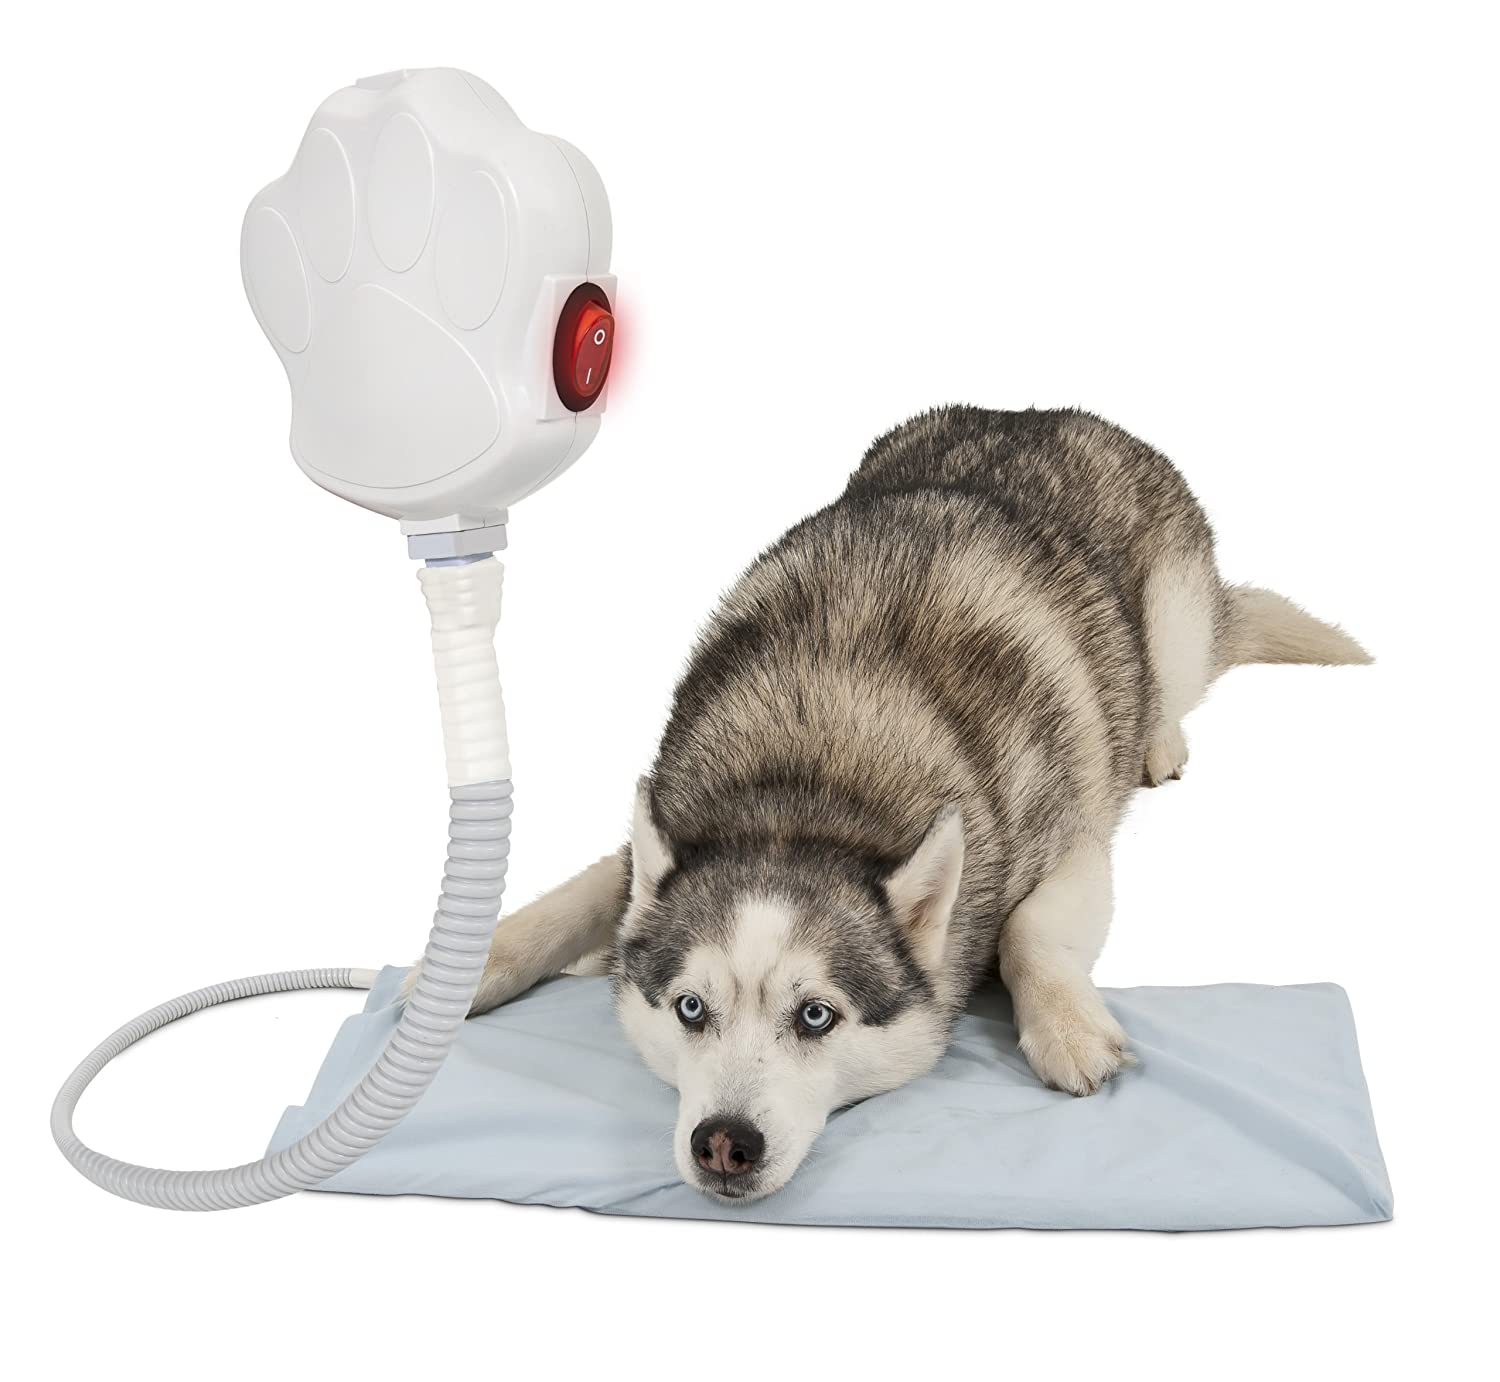 12-Inch x 24-Inch Aspen Pet Indoor Heating Pad Element, 12-Inch by 24-Inch